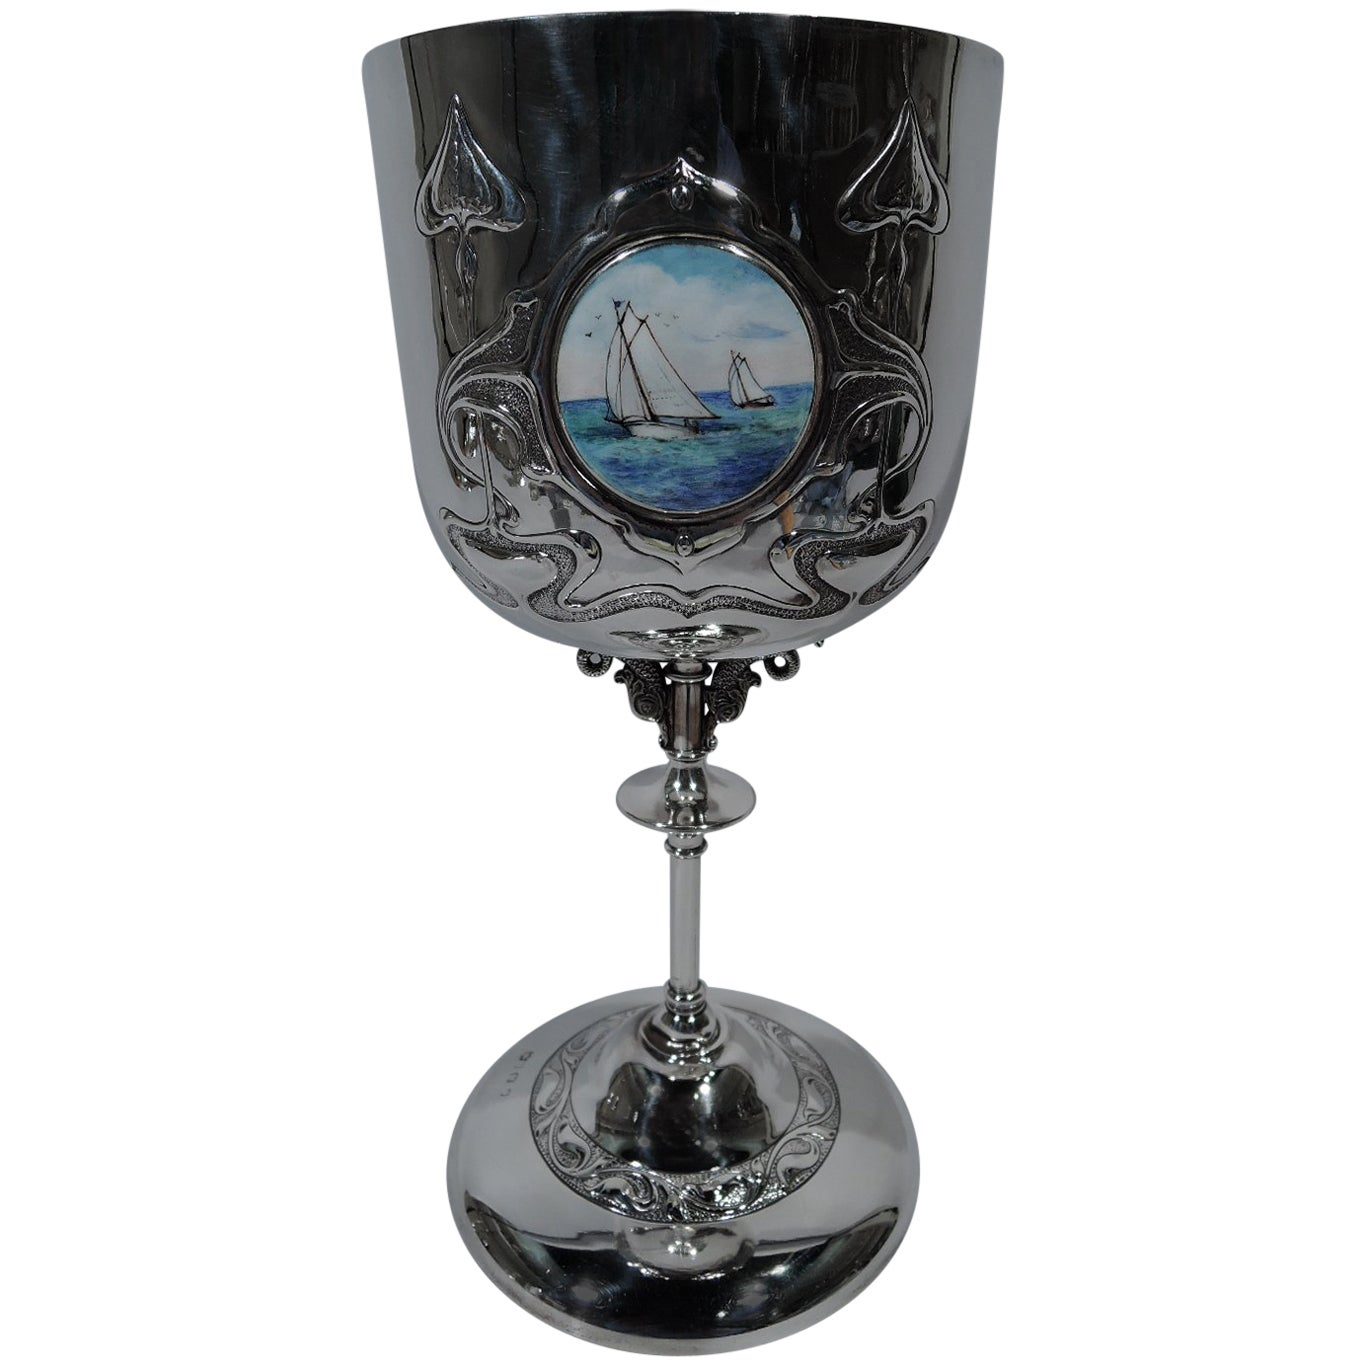 Tall Art Nouveau English Sterling Silver and Enamel Nautical Goblet